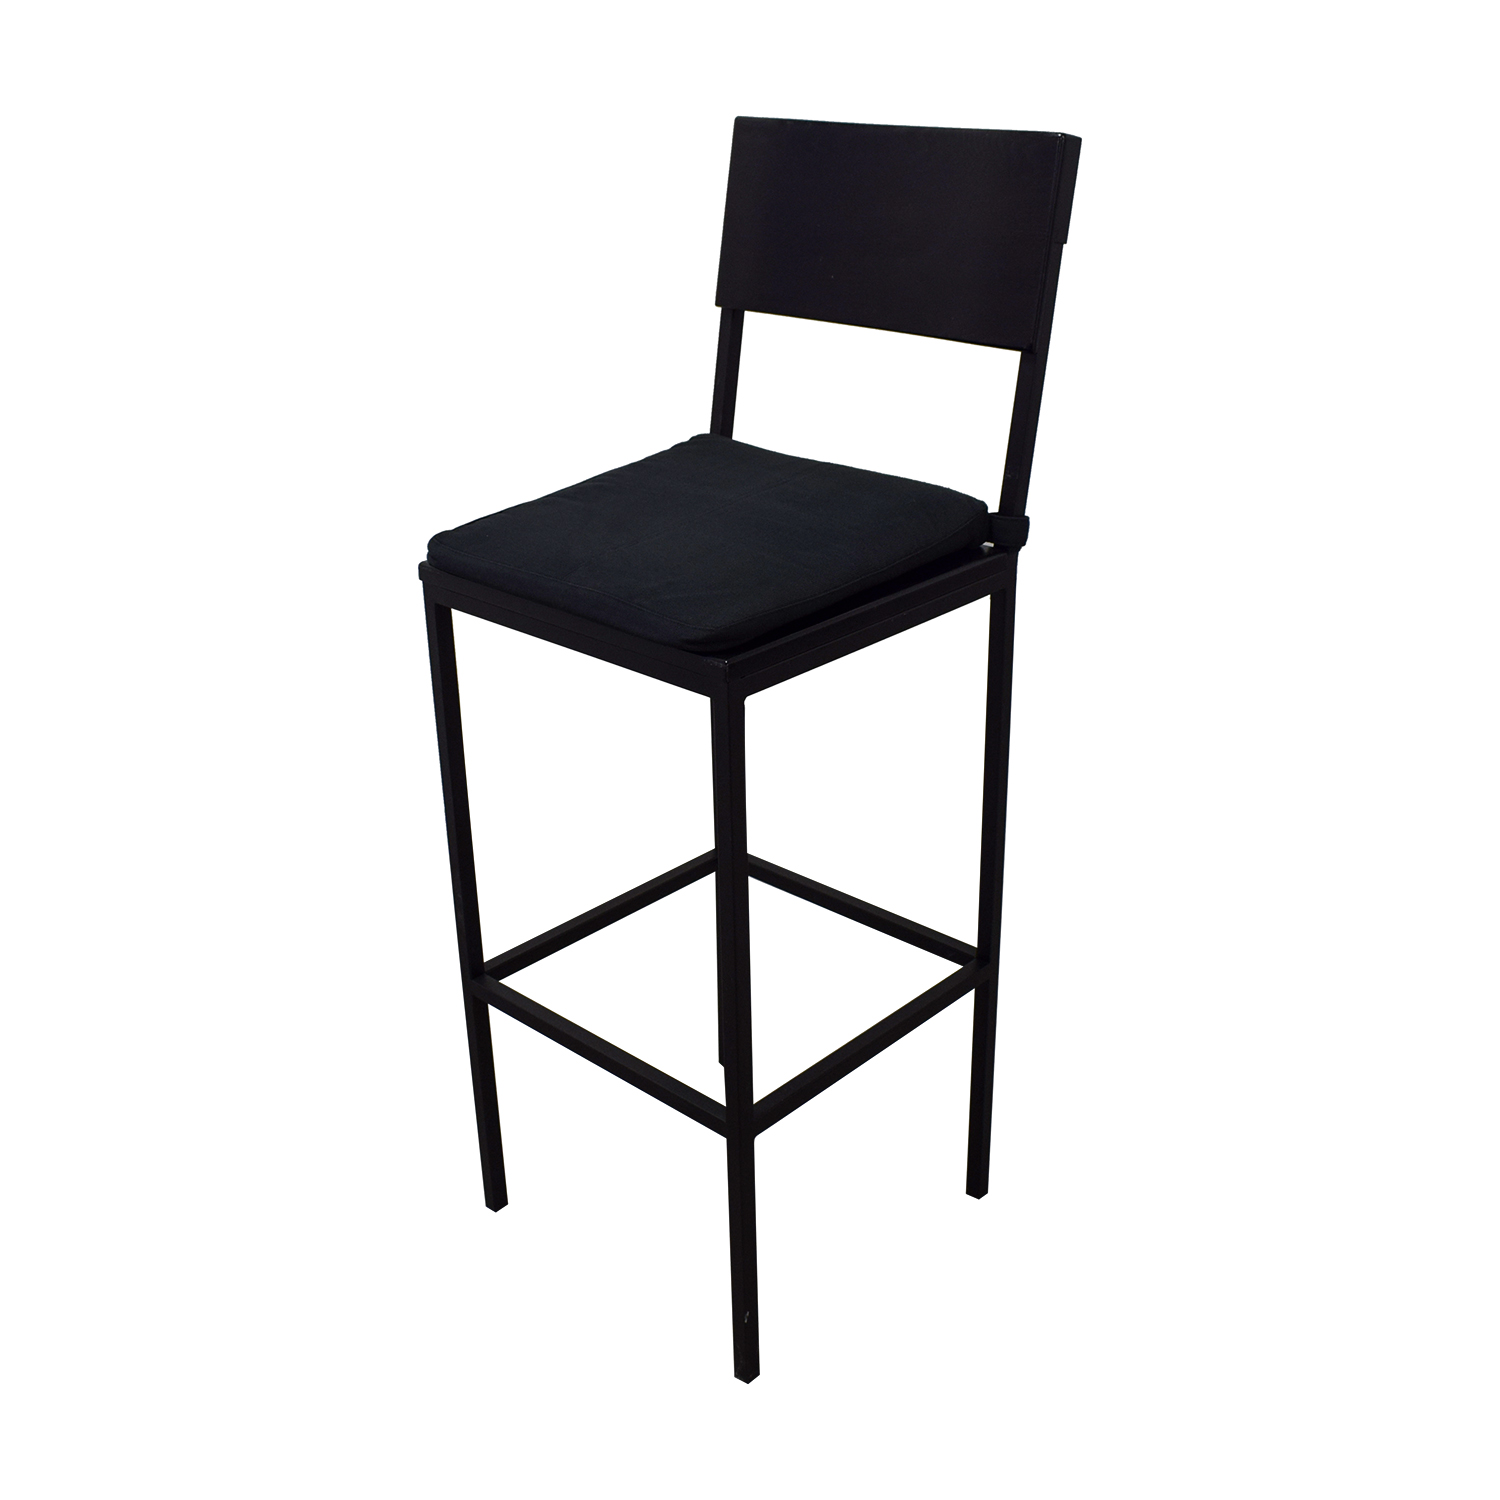 Crate & Barrel Crate & Barrel Black Tall Kitchen Dining Set for sale